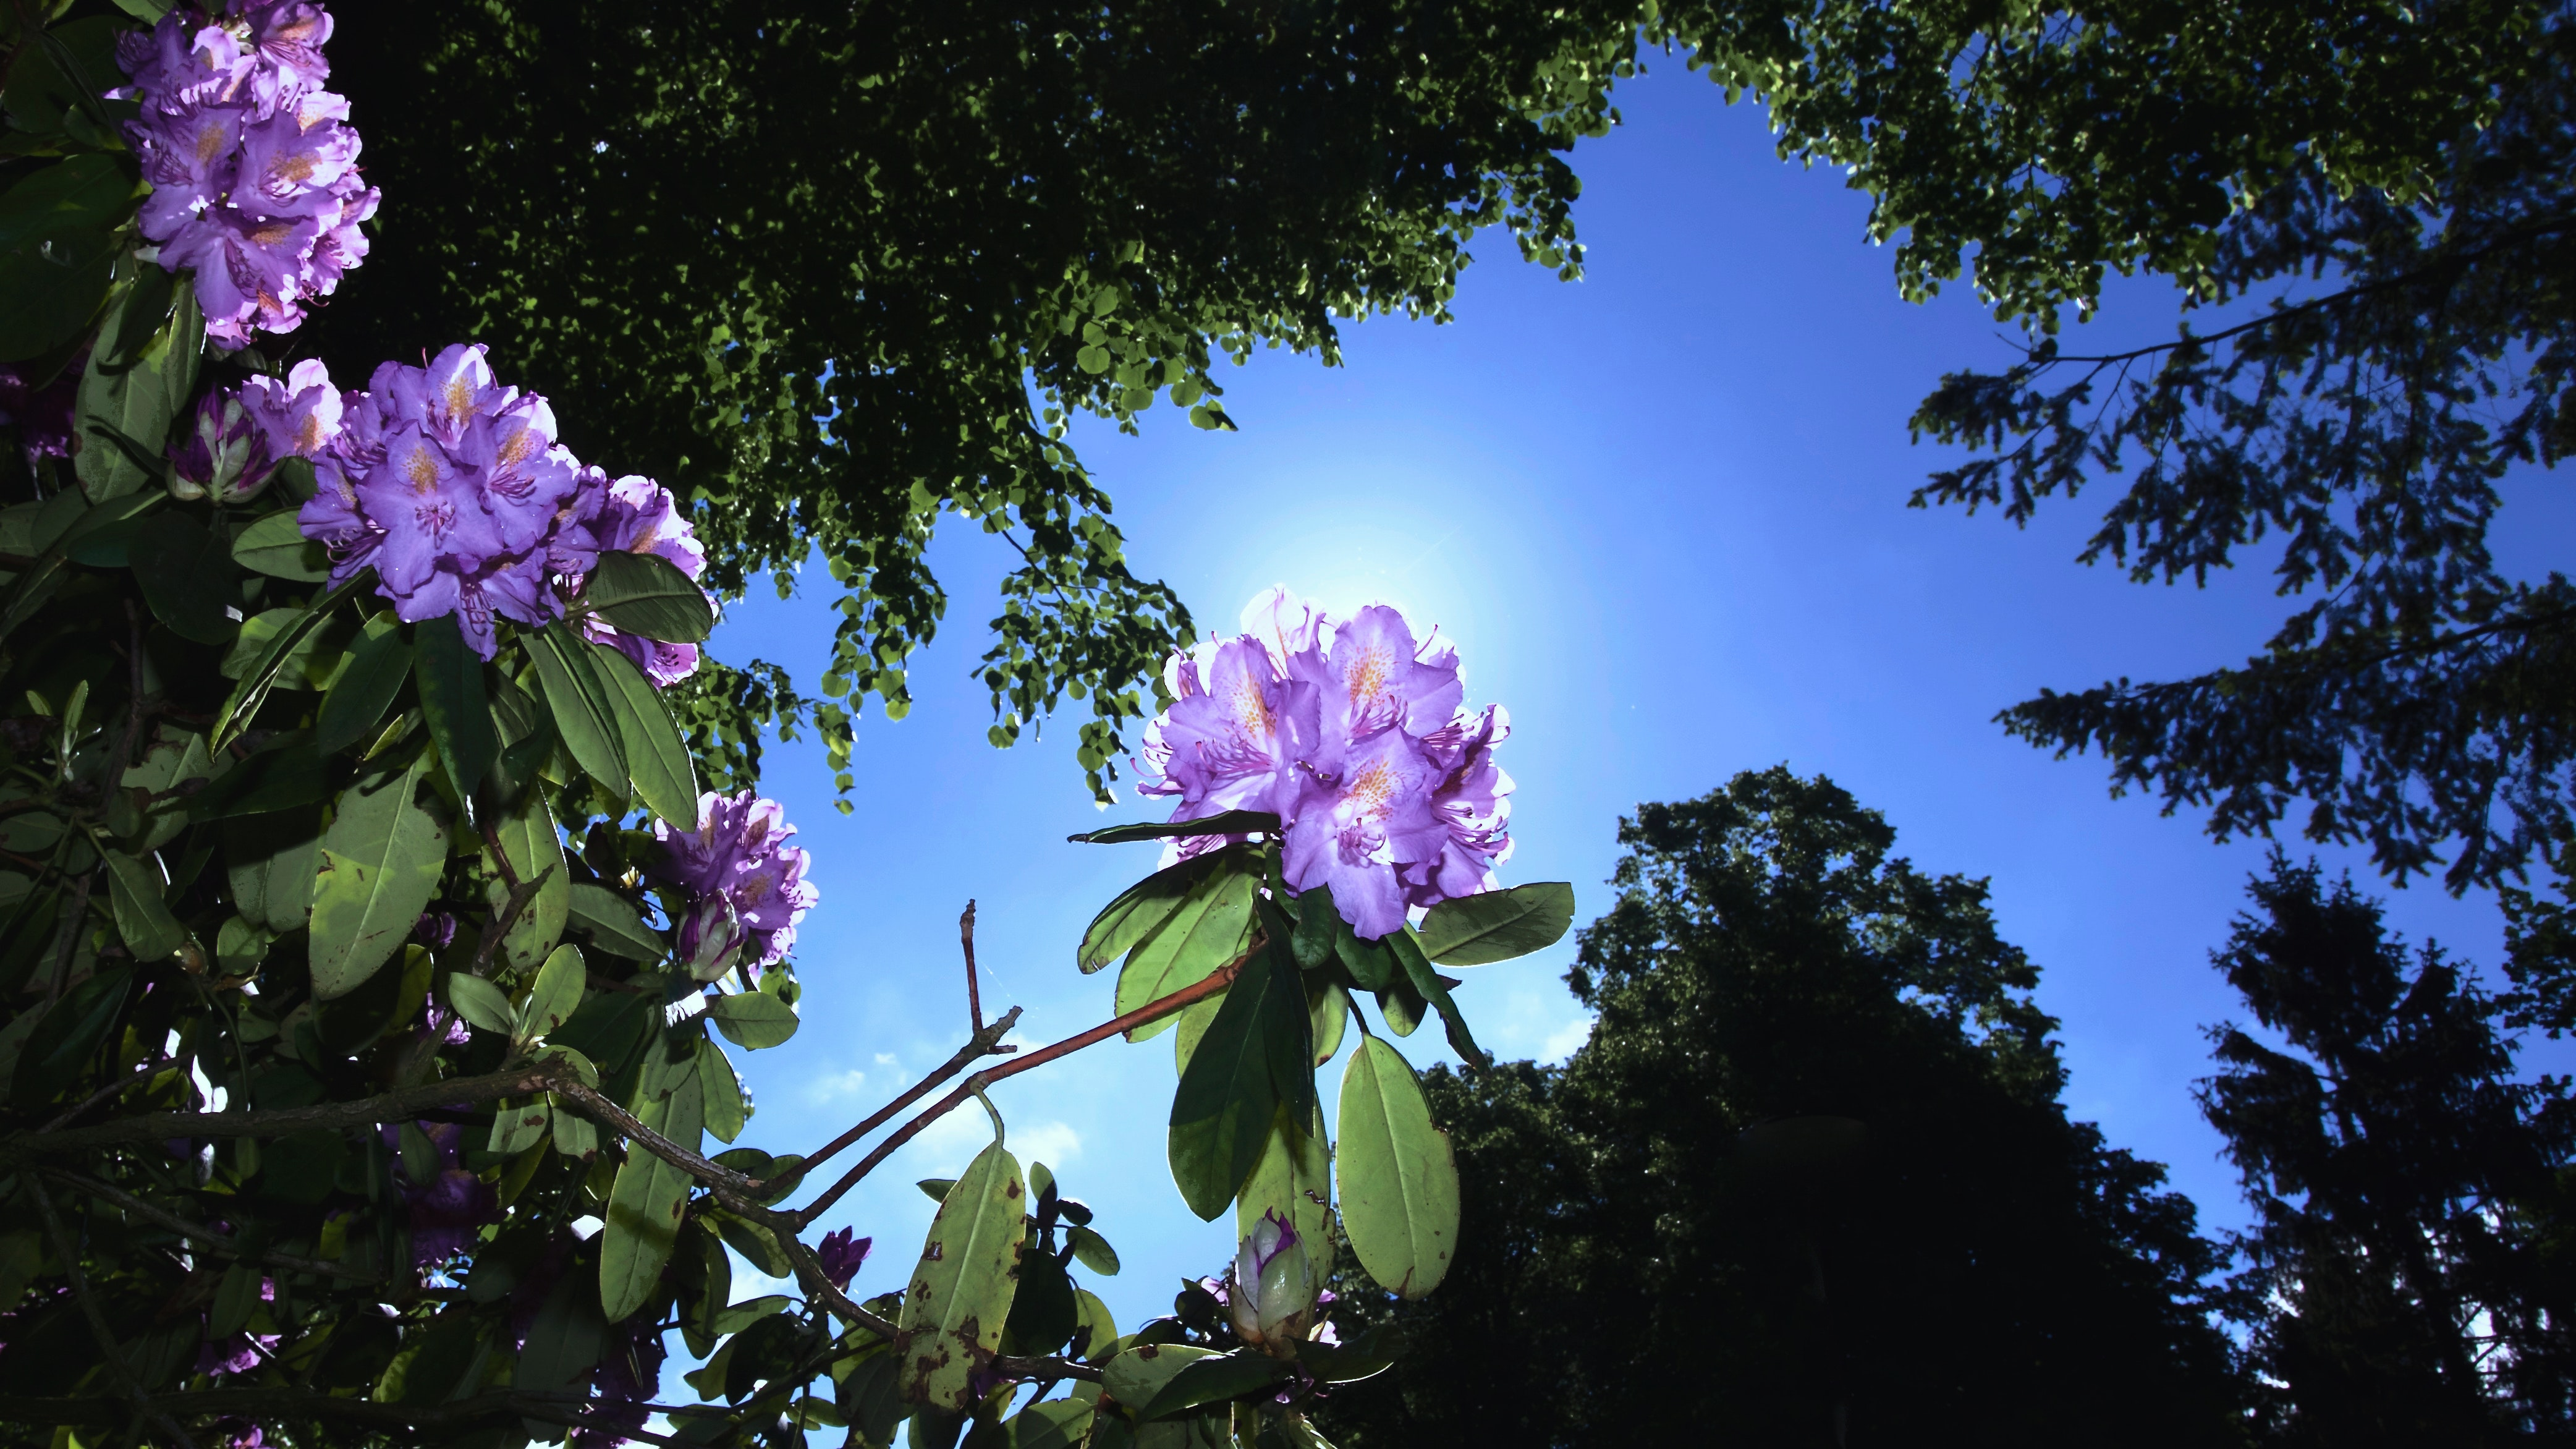 Free Photo Worms Eye View Of Flowers Beside Trees Under The Sky